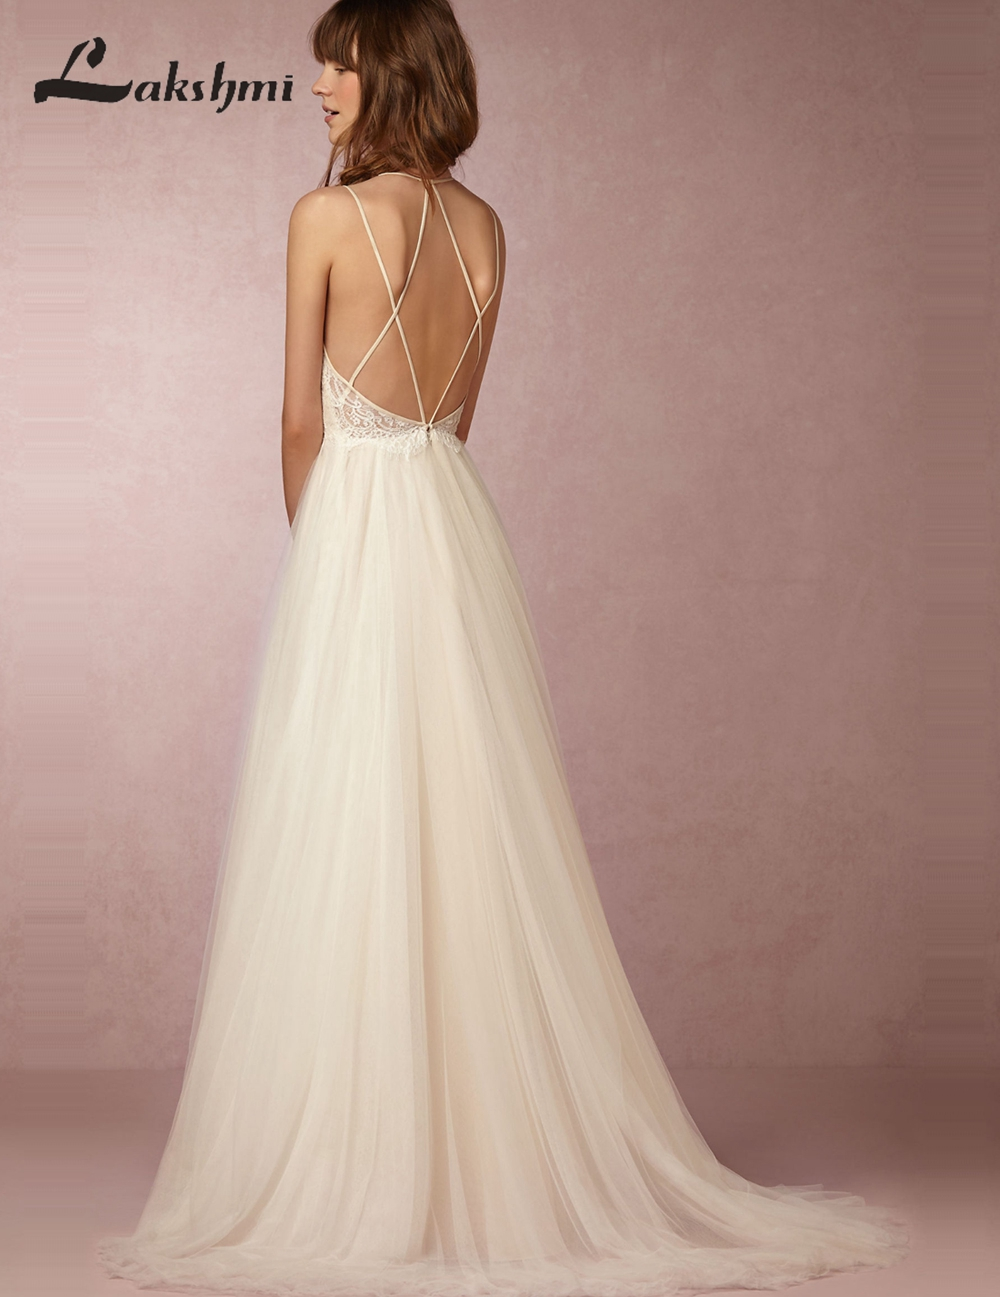 Exquisite Spaghetti Straps Lace Wedding Dresses Criss Cross Back A ...